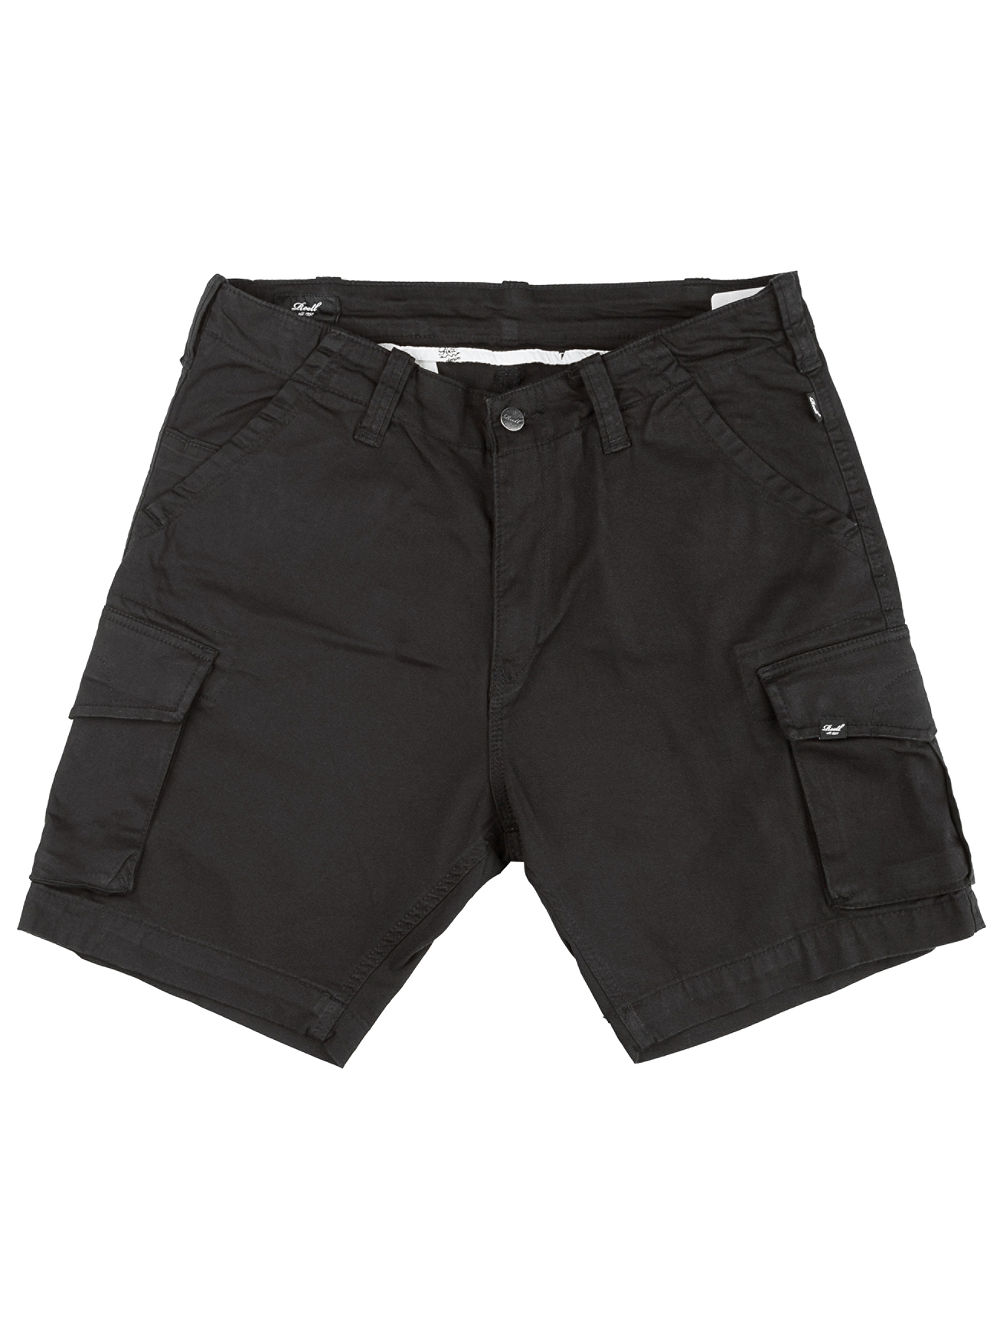 City Cargo ST Shorts